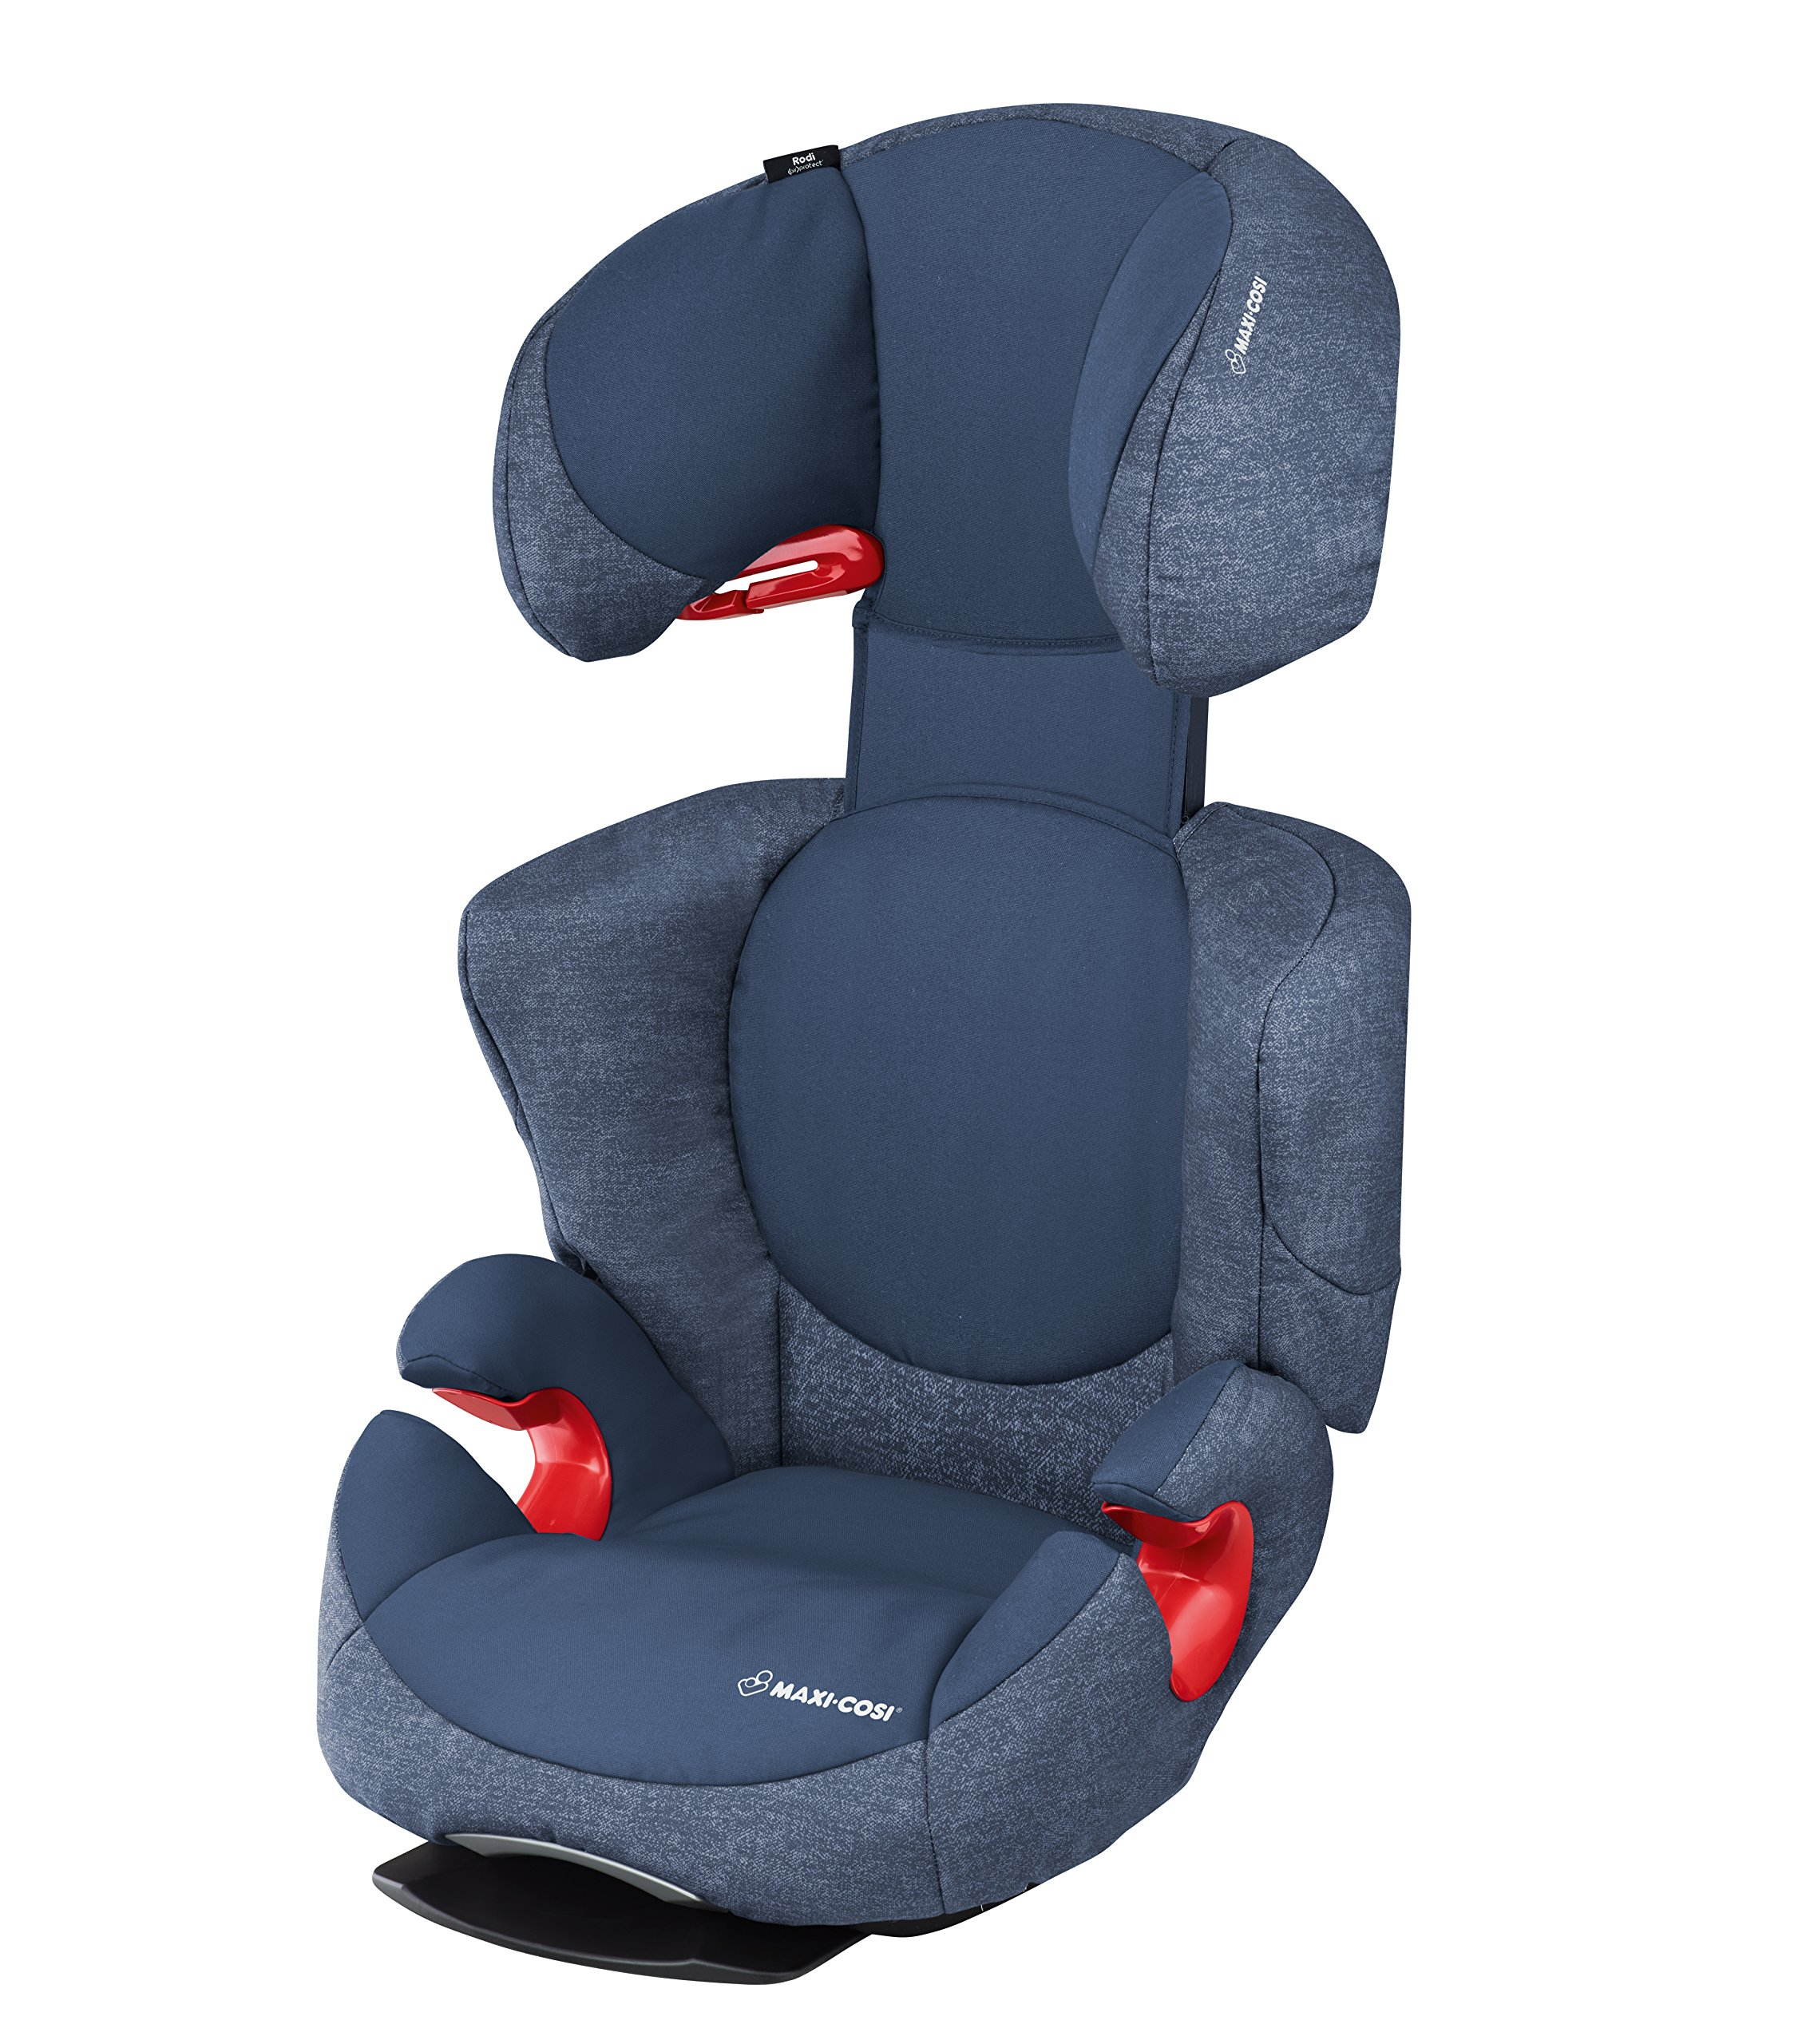 Maxi-Cosi Rodi AirProtect Child Car Seat, Lightweight Highback Booster, 3.5 - 12 Years, 15-36 kg, Nomad Blue Maxi-Cosi Excellent side impact protection - with the combination of patented air protect technology in the headrest and side impact protection in the backrest and seat reduces the risk of head, neck, back and hips injuries. Patented air protect technology in headrest - the risk of head and neck injuries are reduced up to 20%* thanks to the air protect technology in the headrest. *see maxi-cosi's website for more information Easy to install - easily install this car seat with a 3-point seat belt and attach the anchorage point in the head rest through your cars head rest 2